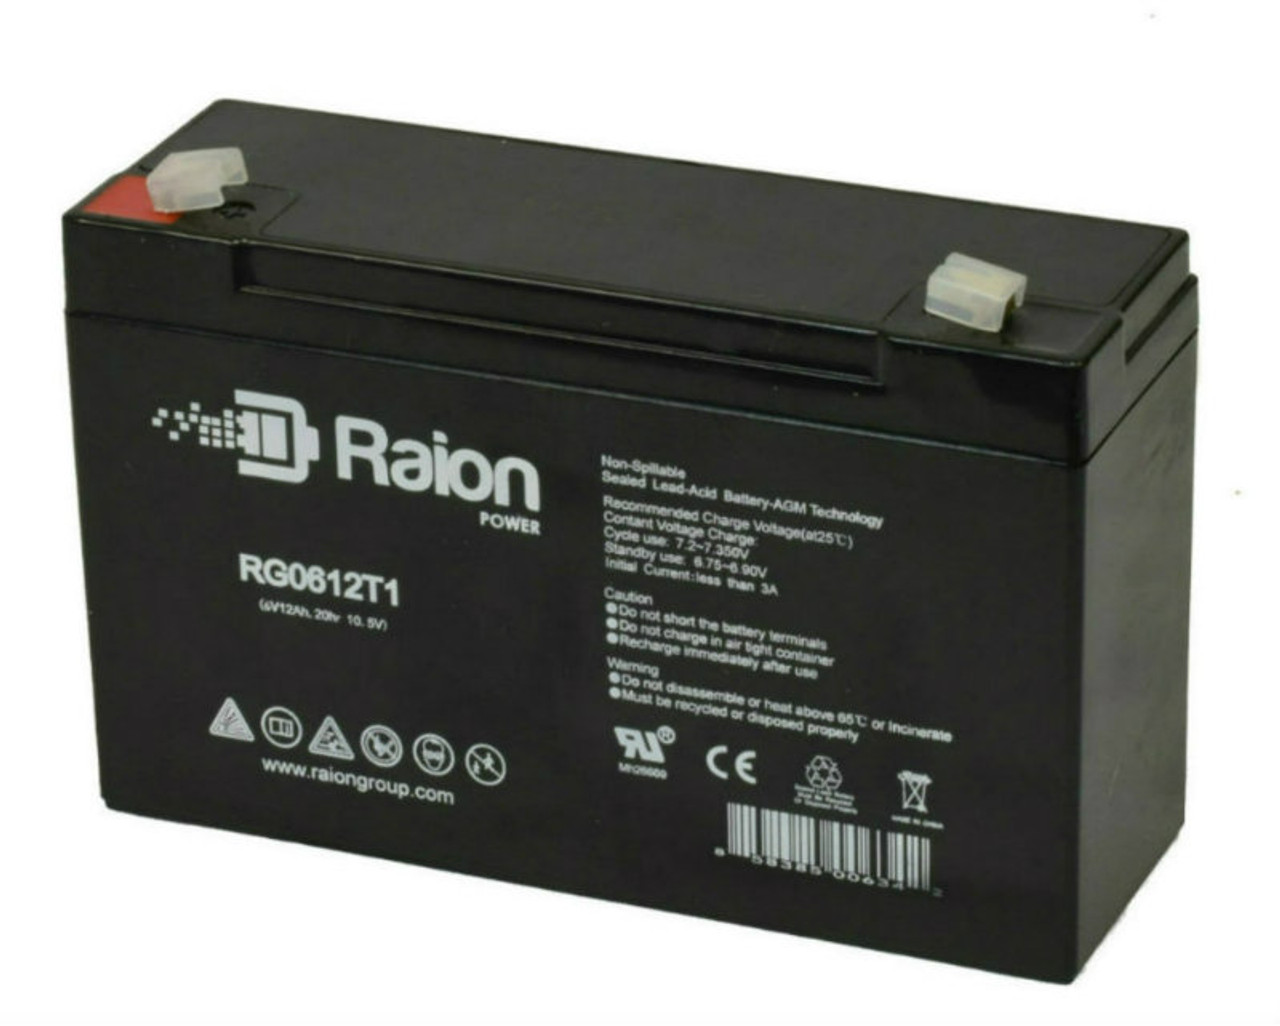 Raion Power RG06120T1 Replacement Battery Pack for Sure-Lites 4CH1 emergency light